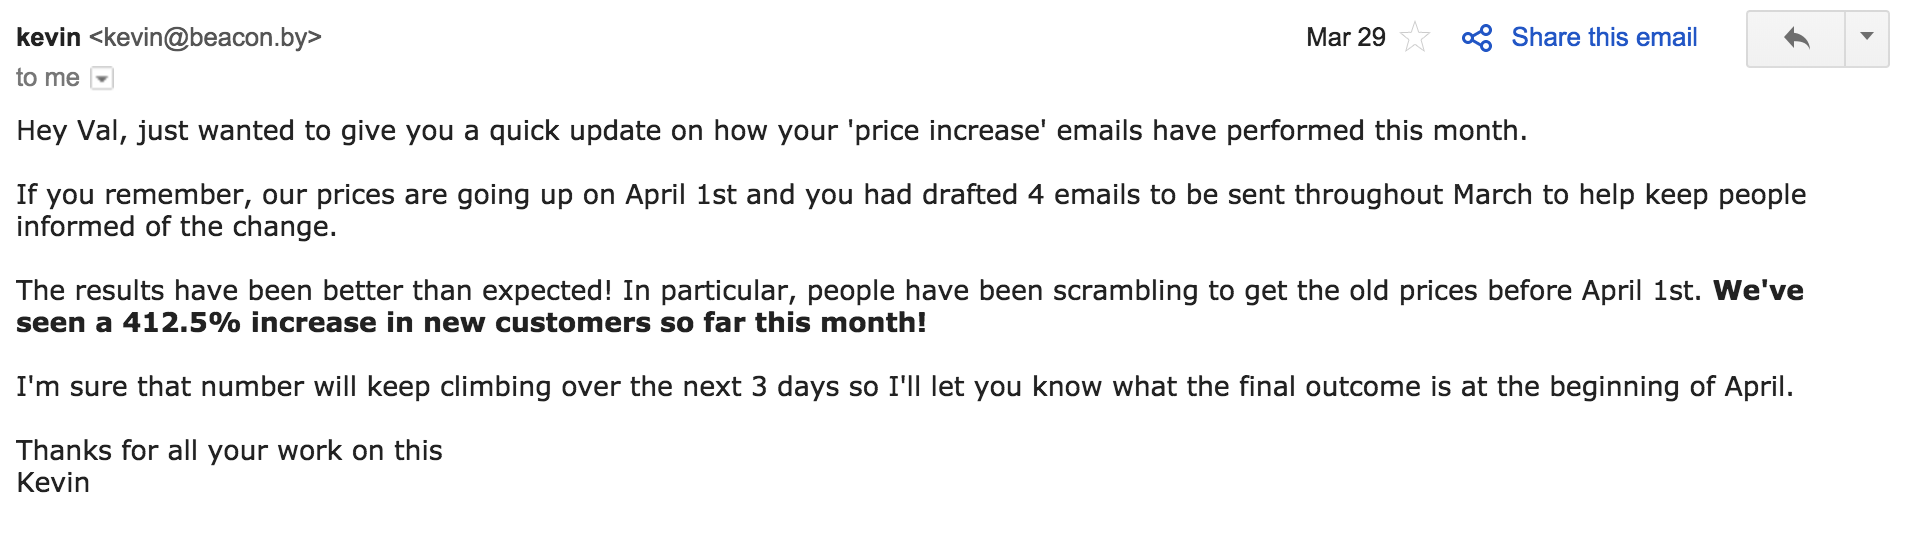 How do you turn a cold new subscriber into a warm lead? I